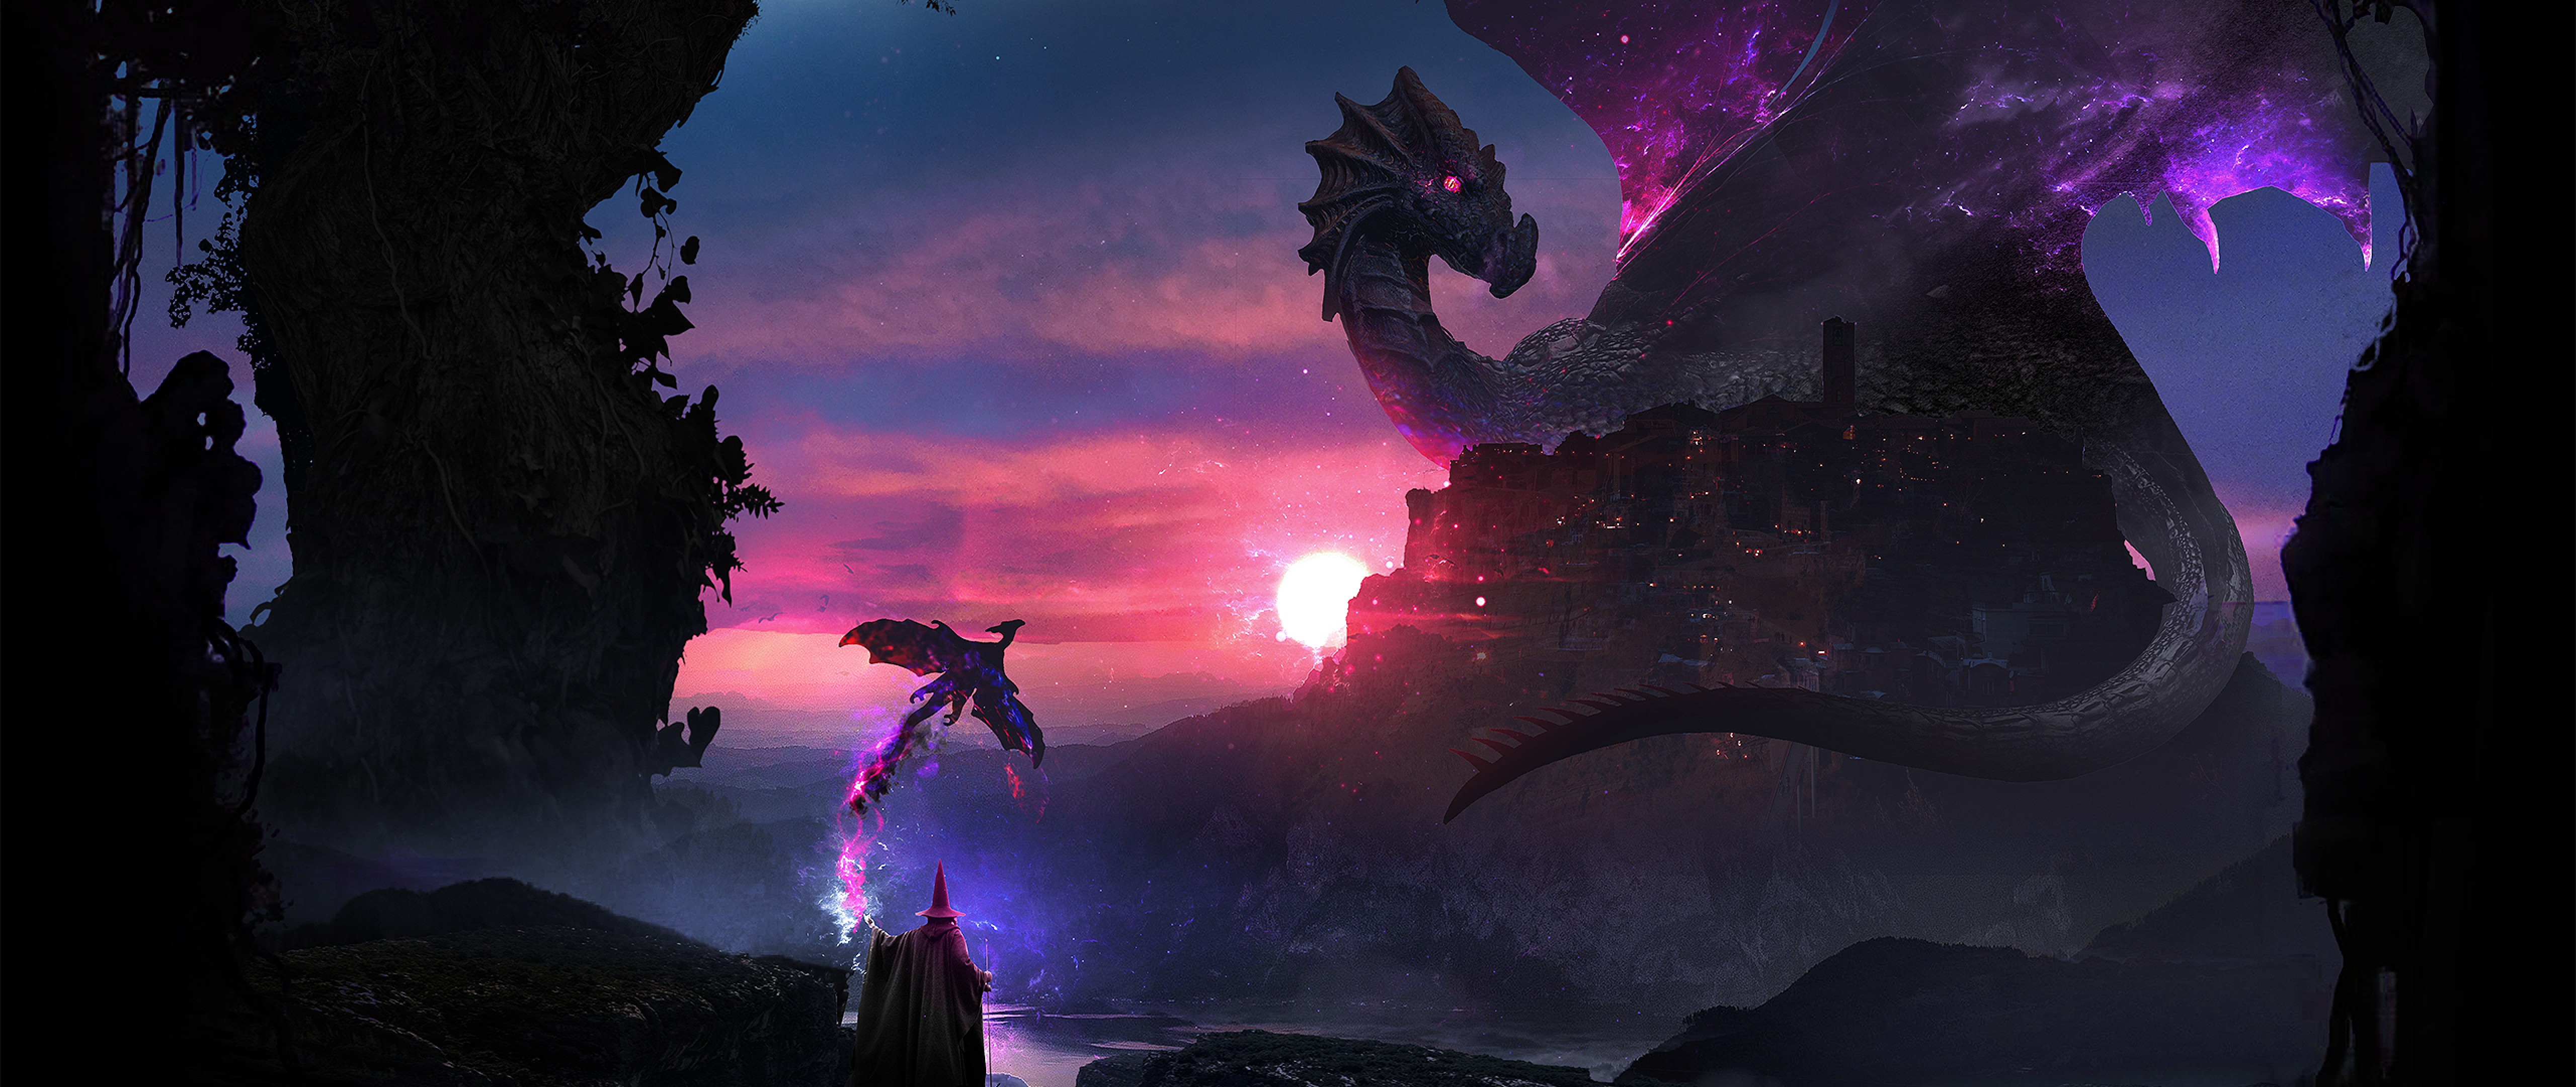 Free Download Dragon HD Wallpaper